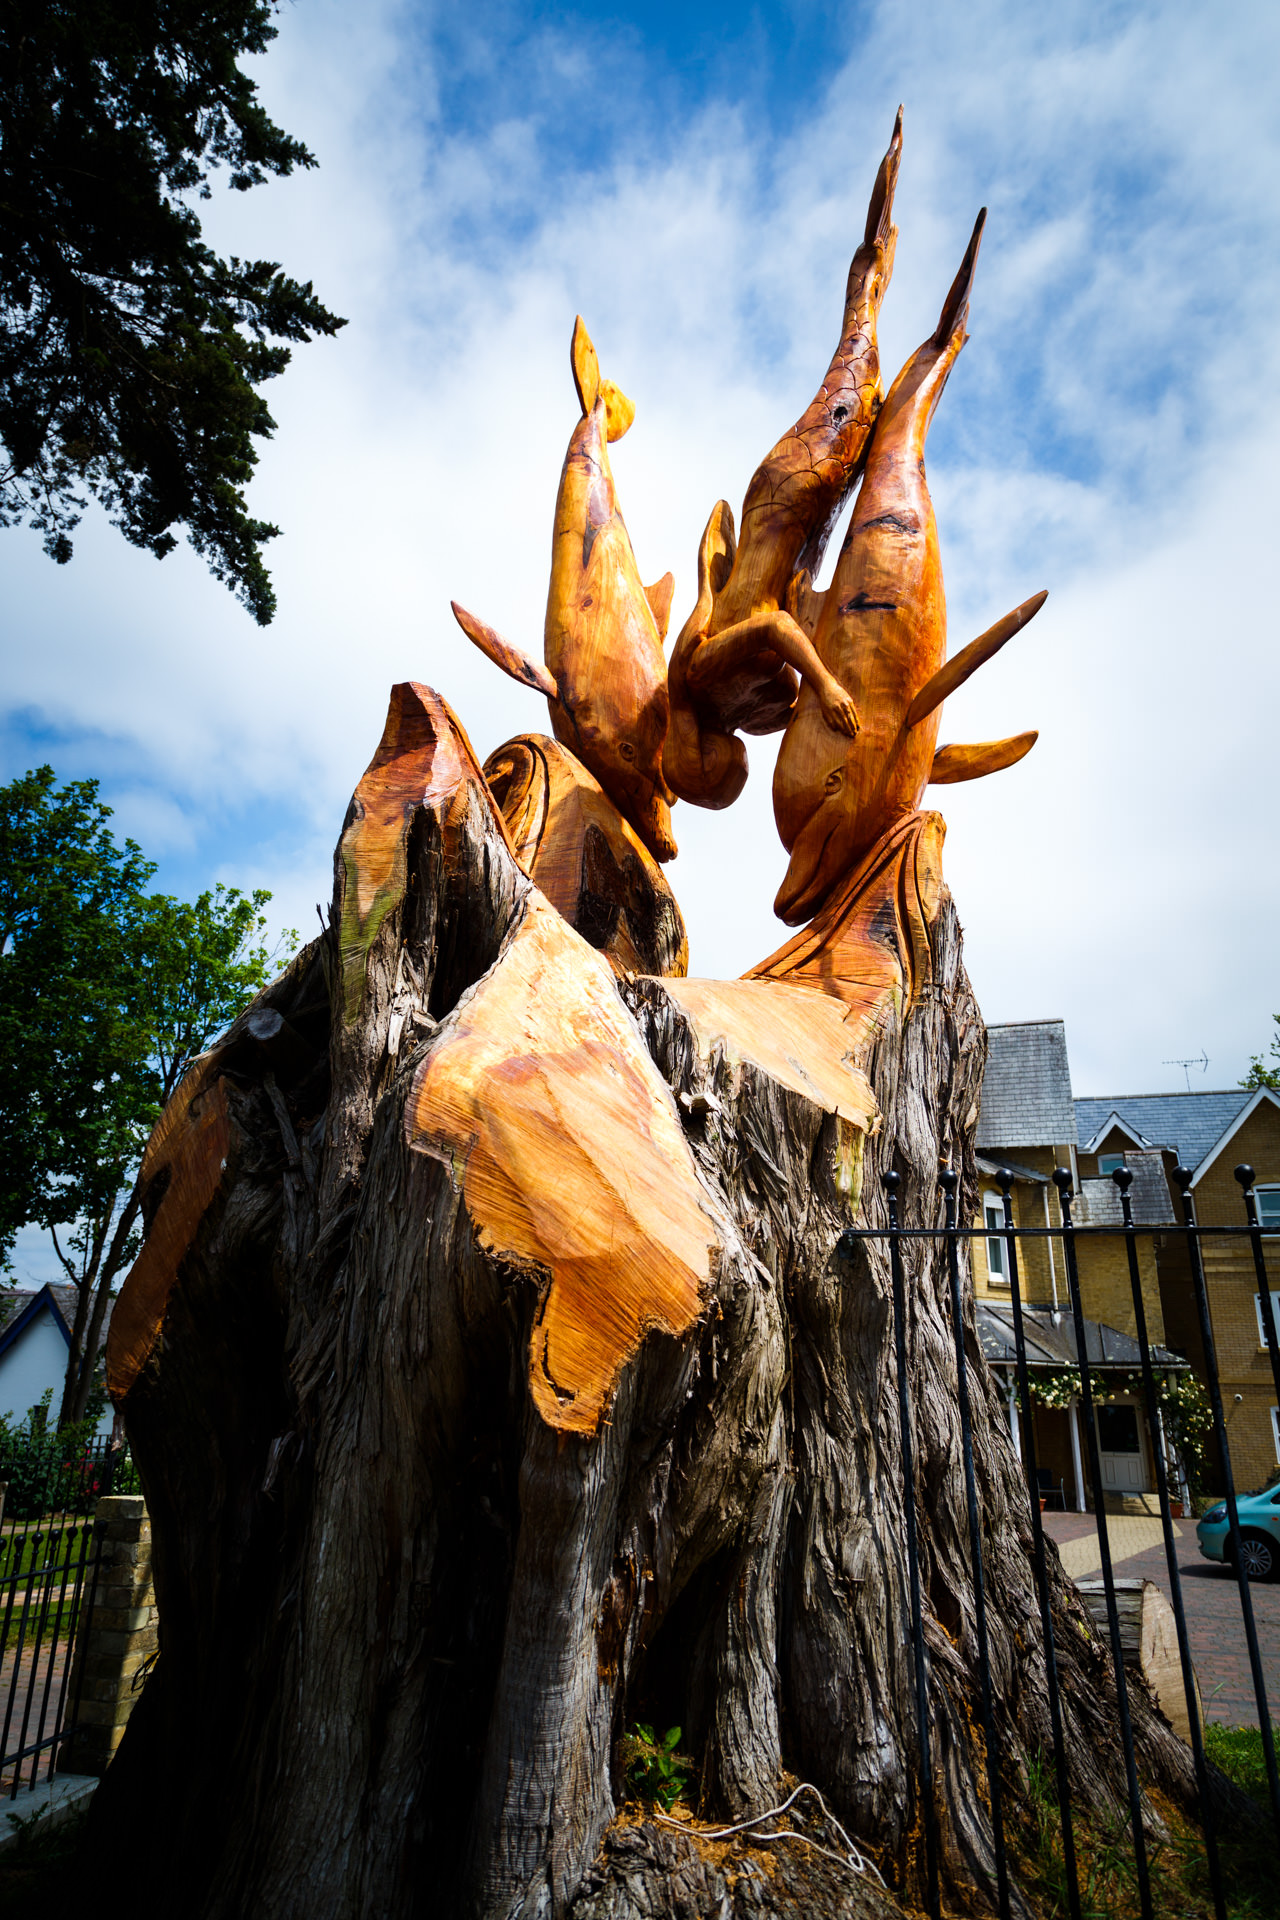 Mermaid and dolphins carved out of a tree.